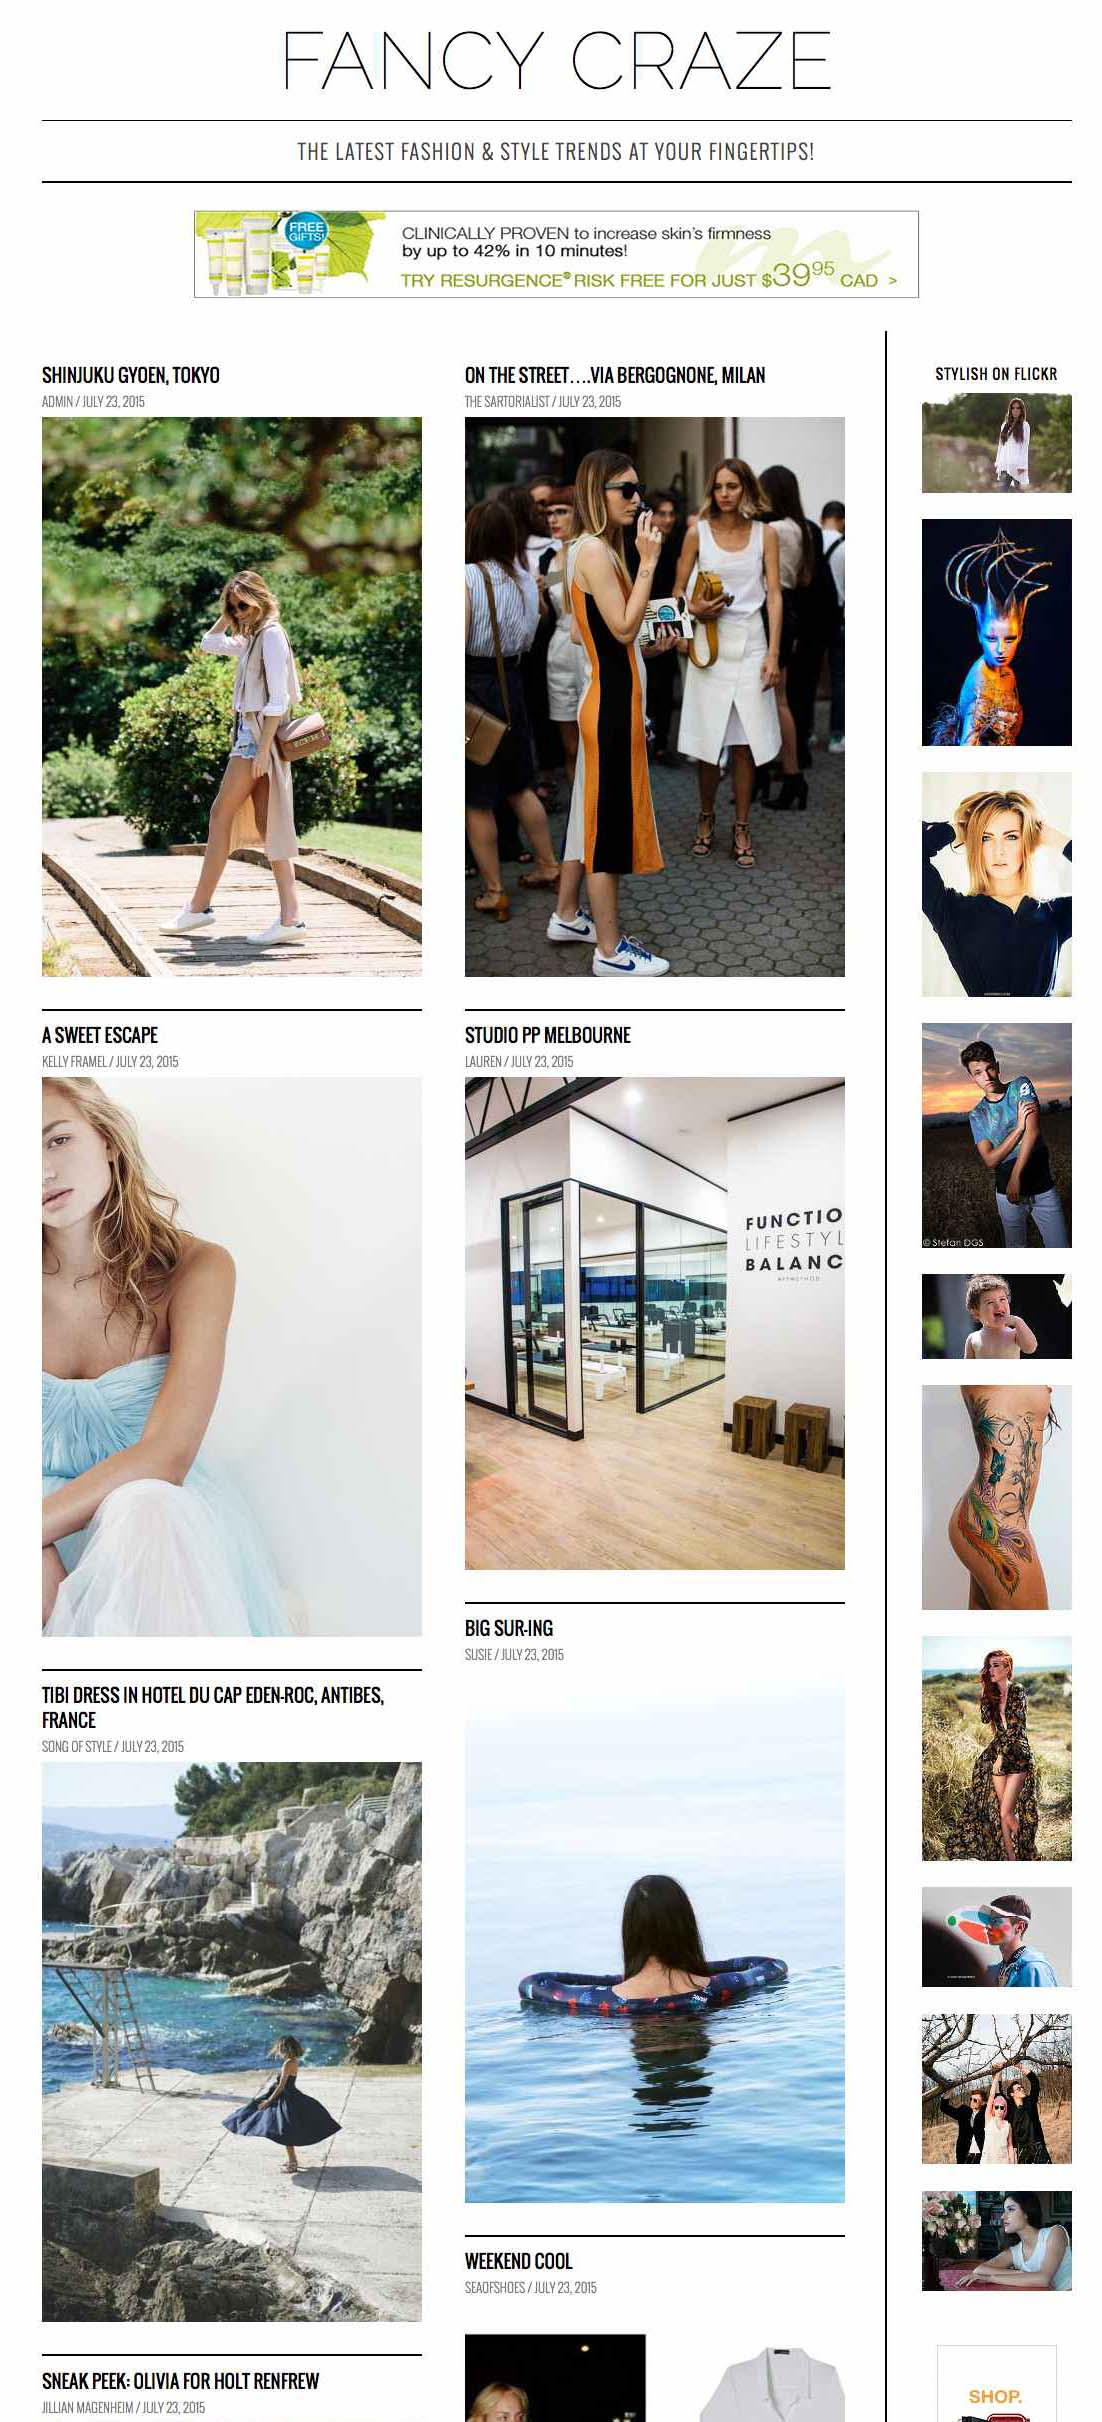 Fashion & Style trendsetting blogs aggregator